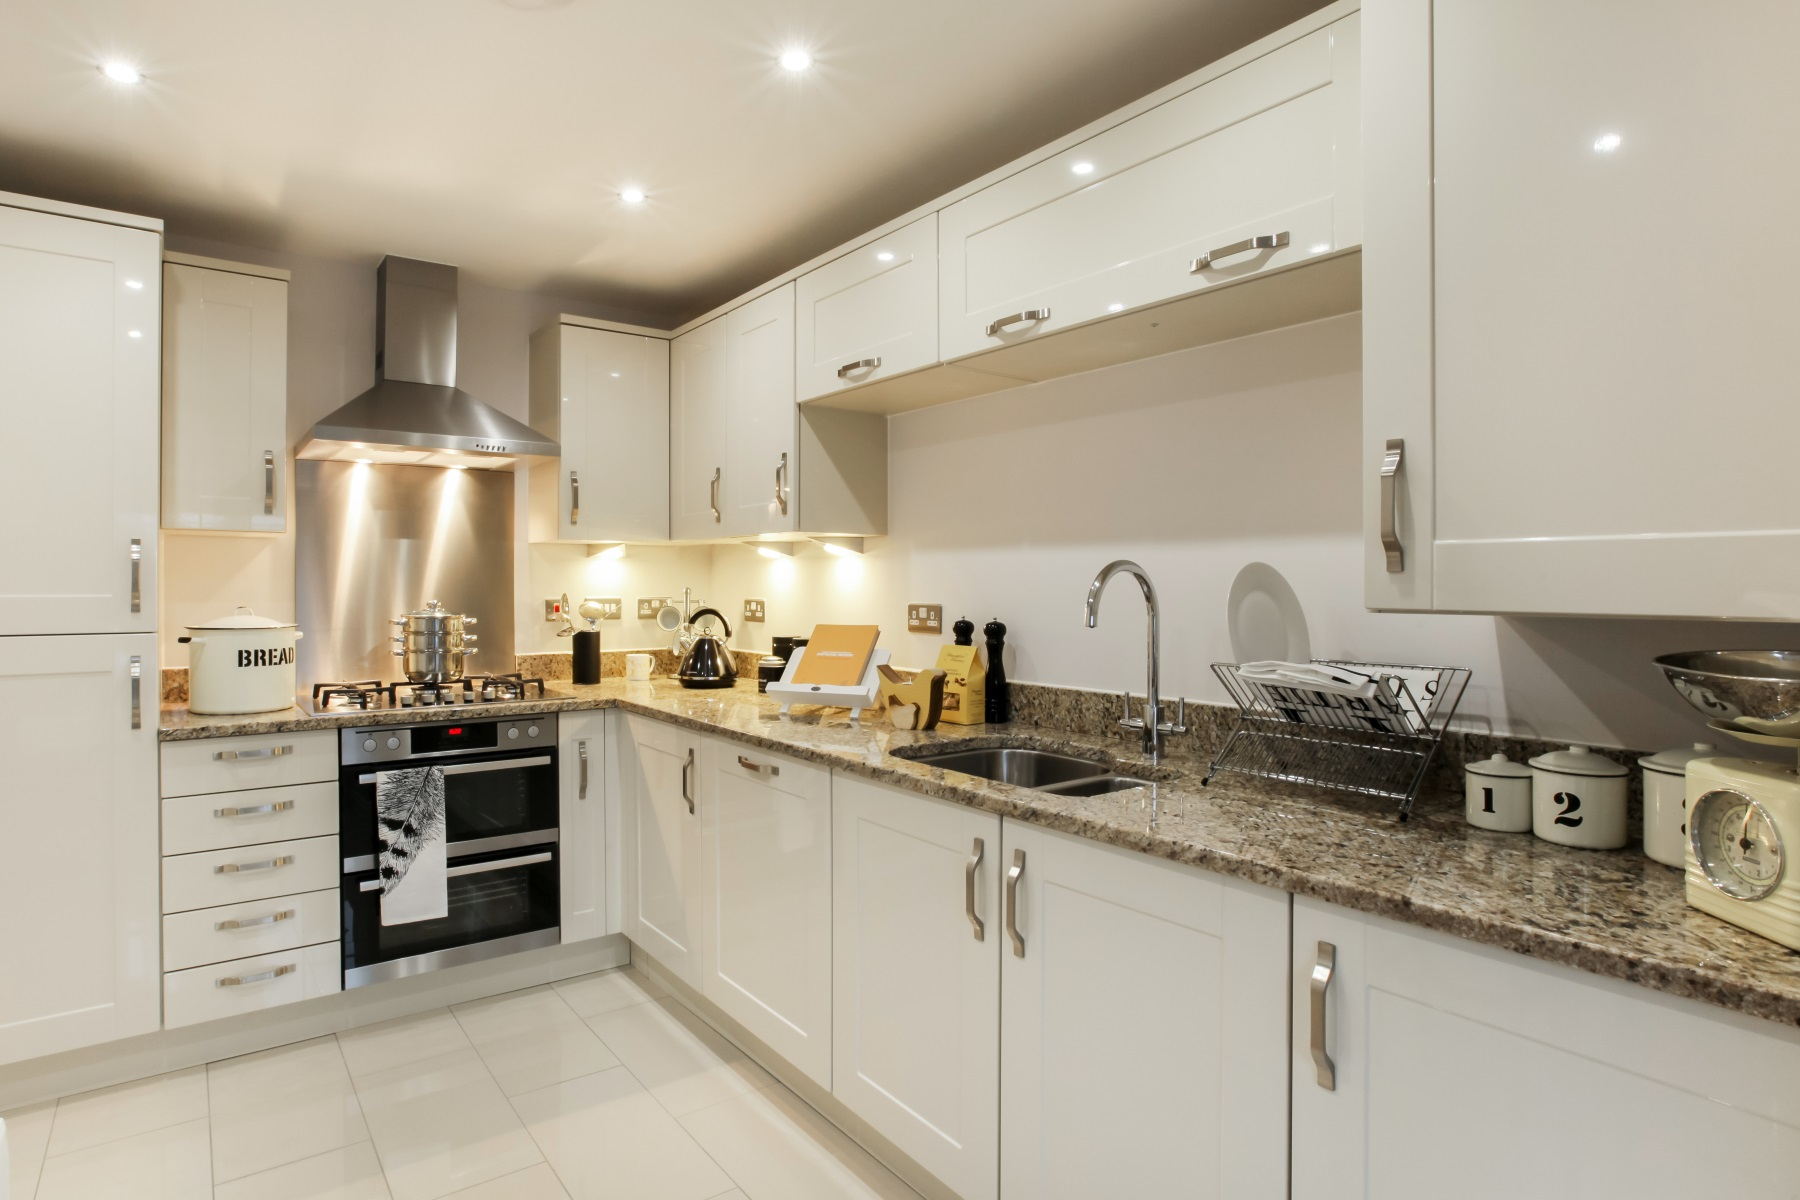 TW Exeter - Hele Park - Farleigh example kitchen